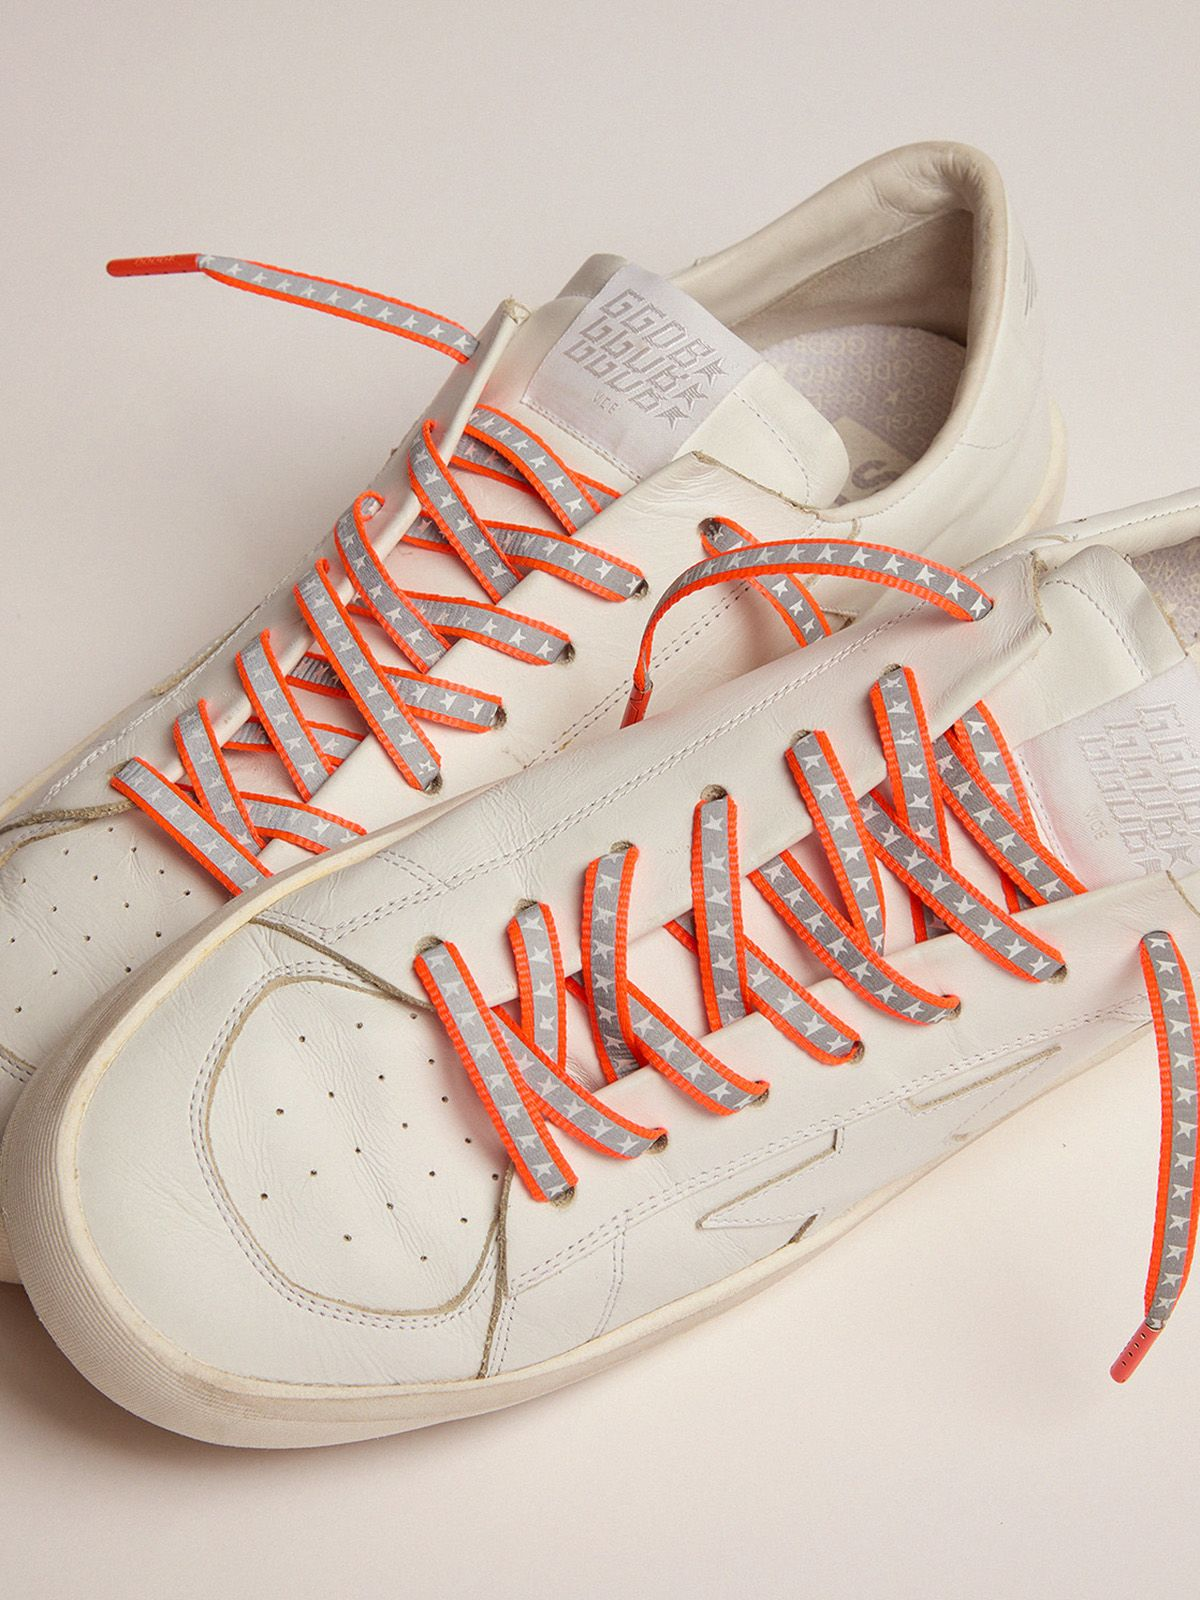 Golden Goose - Women's neon orange reflective laces with stars in